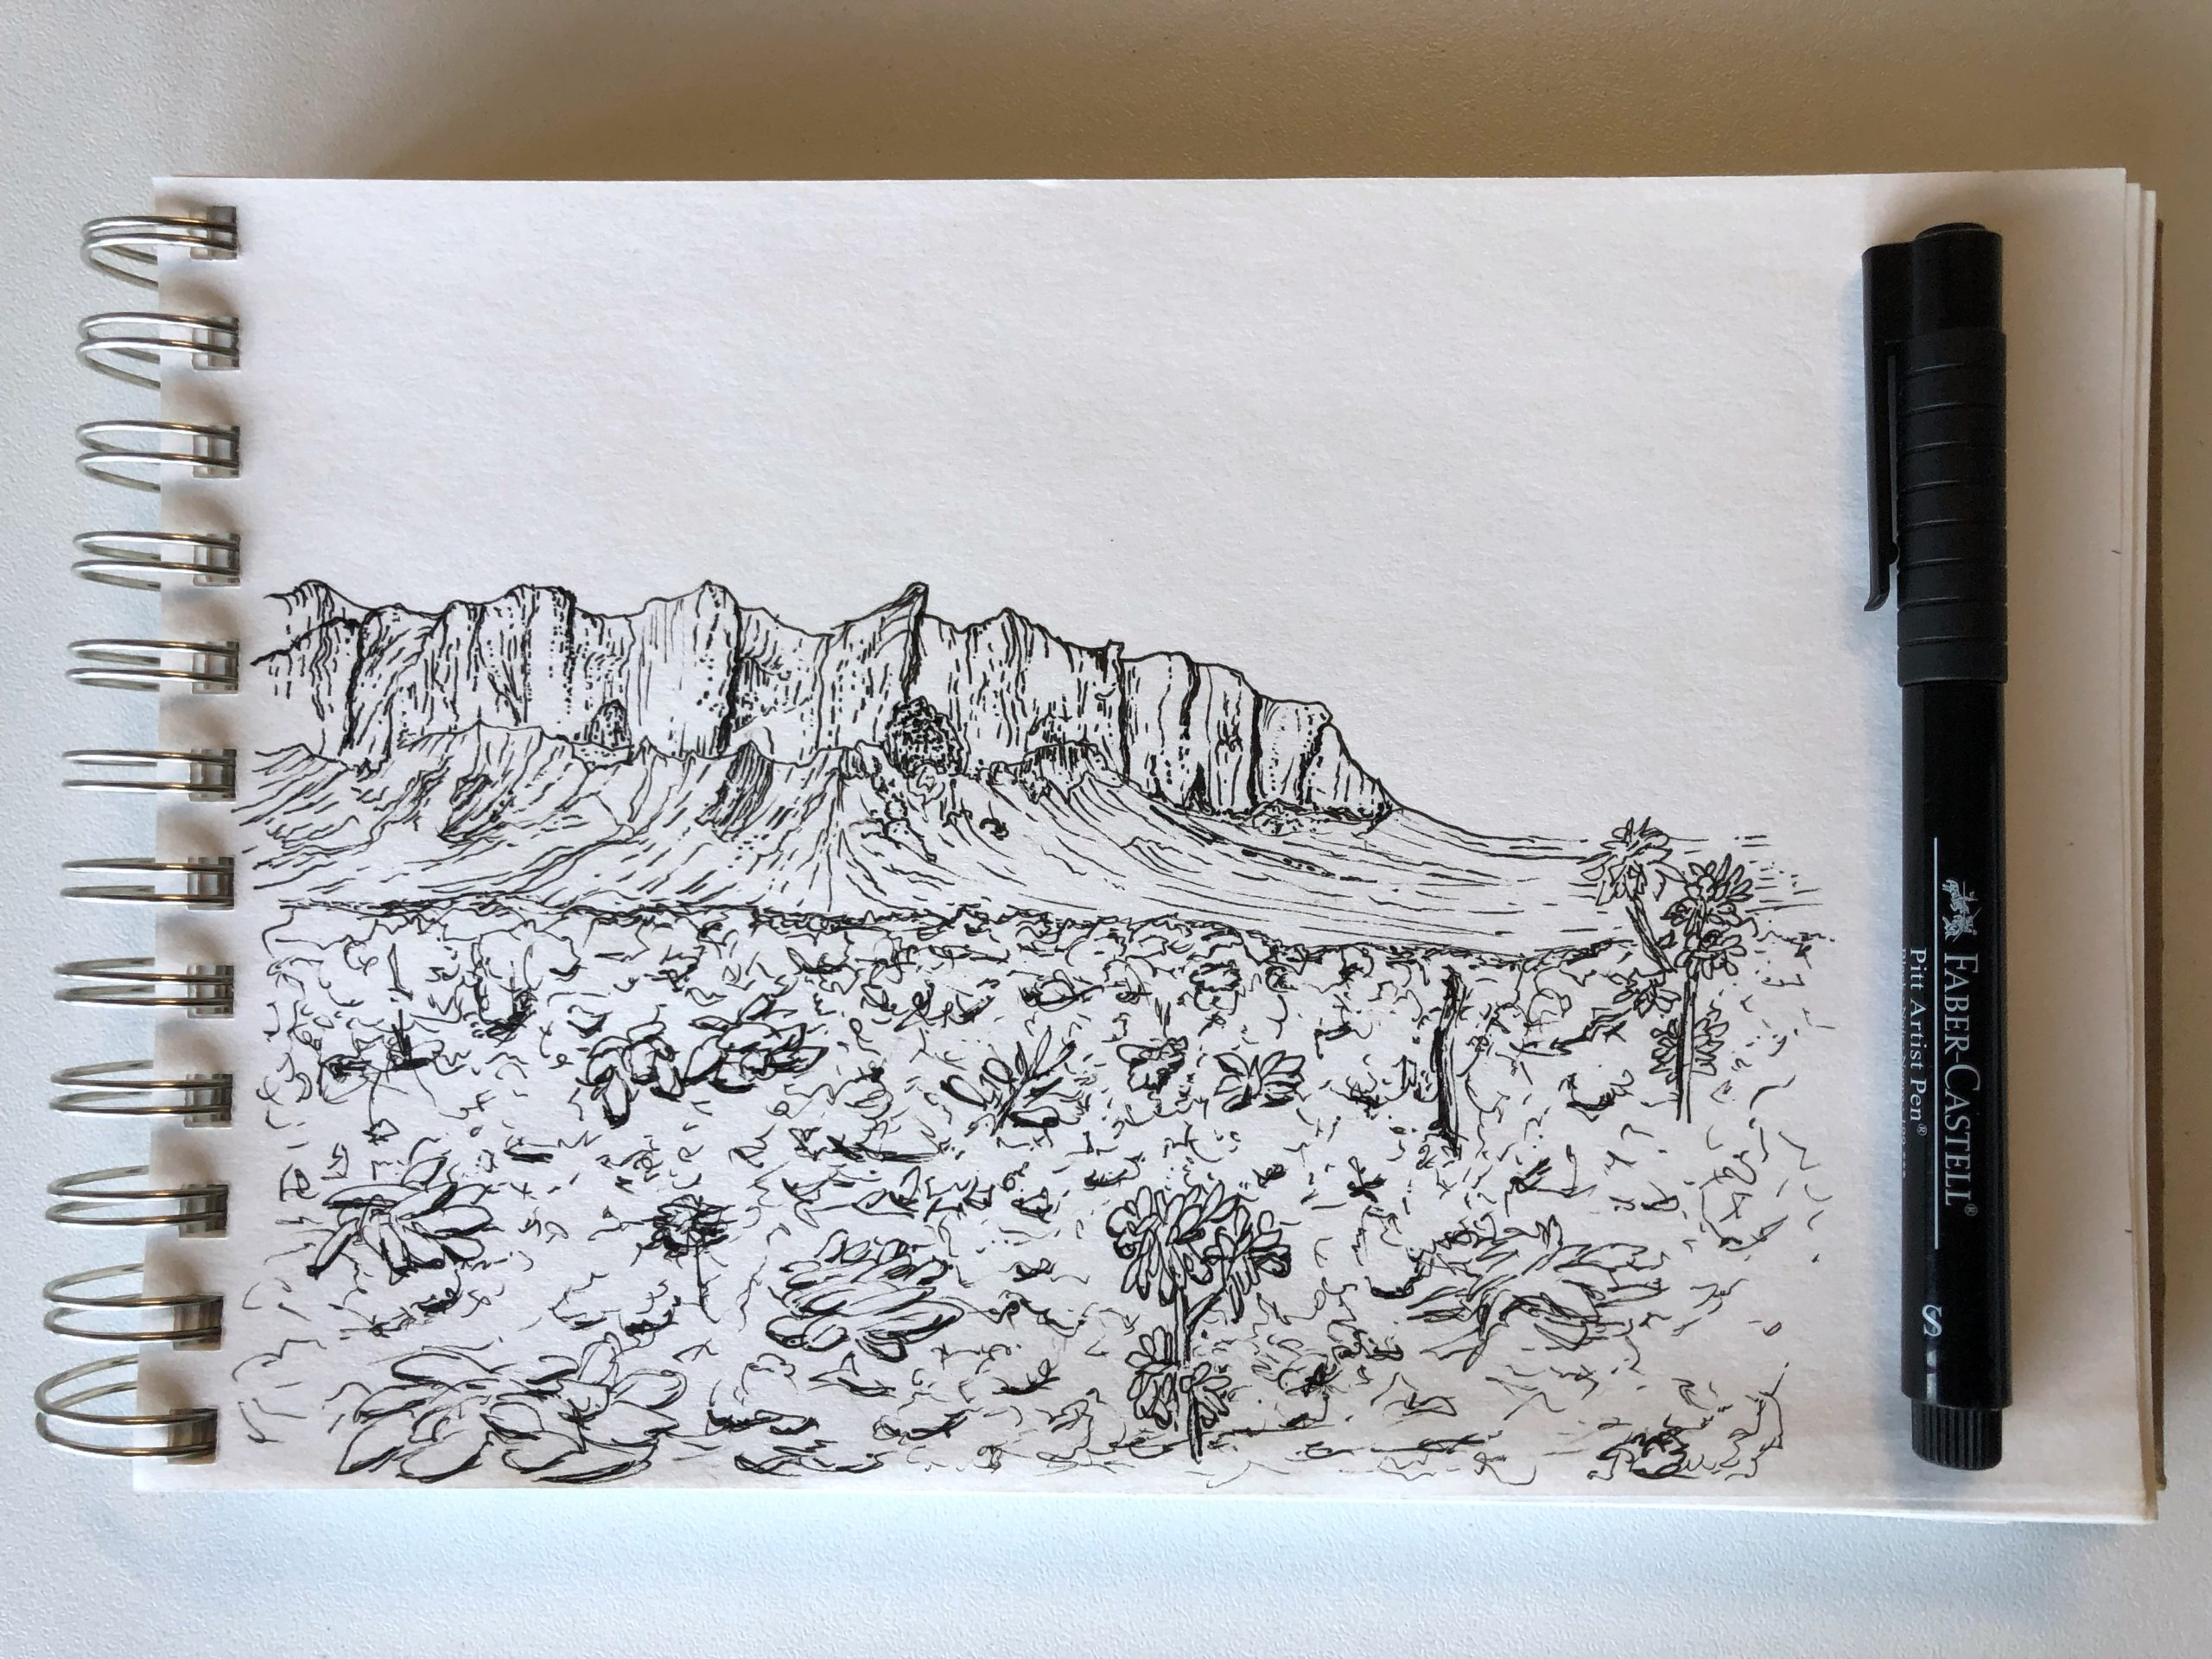 pen and ink drawing of the desert